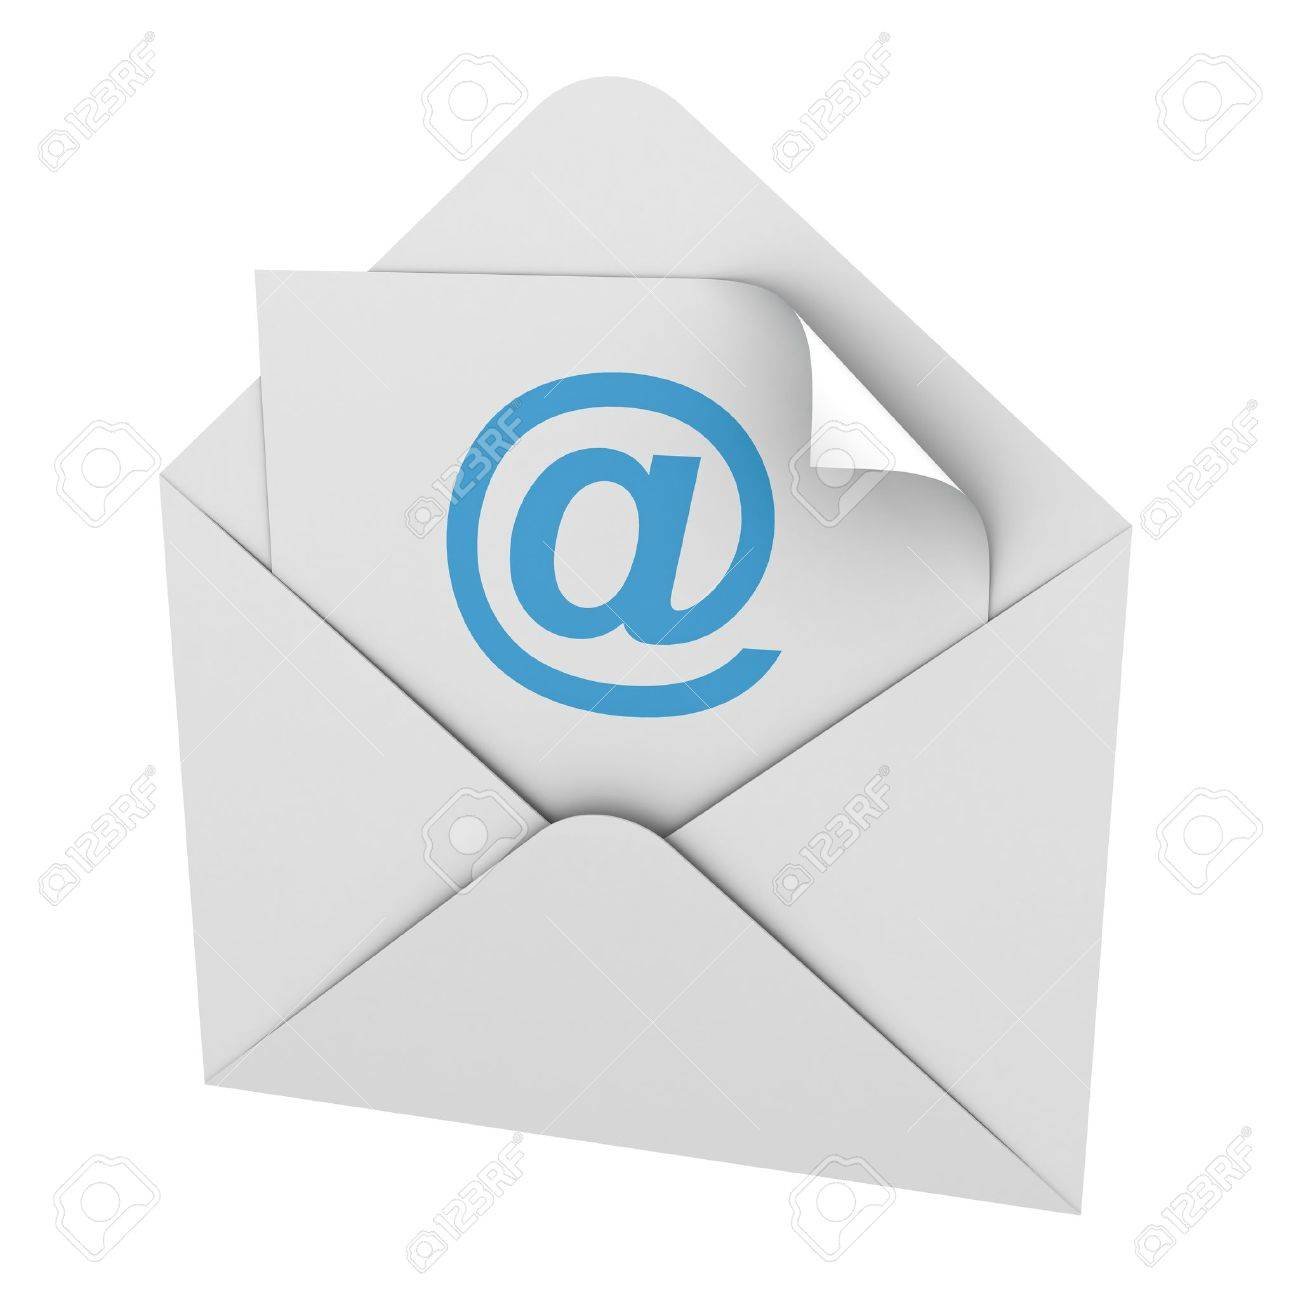 E mail concept isolated on white background Stock Photo - 12432571